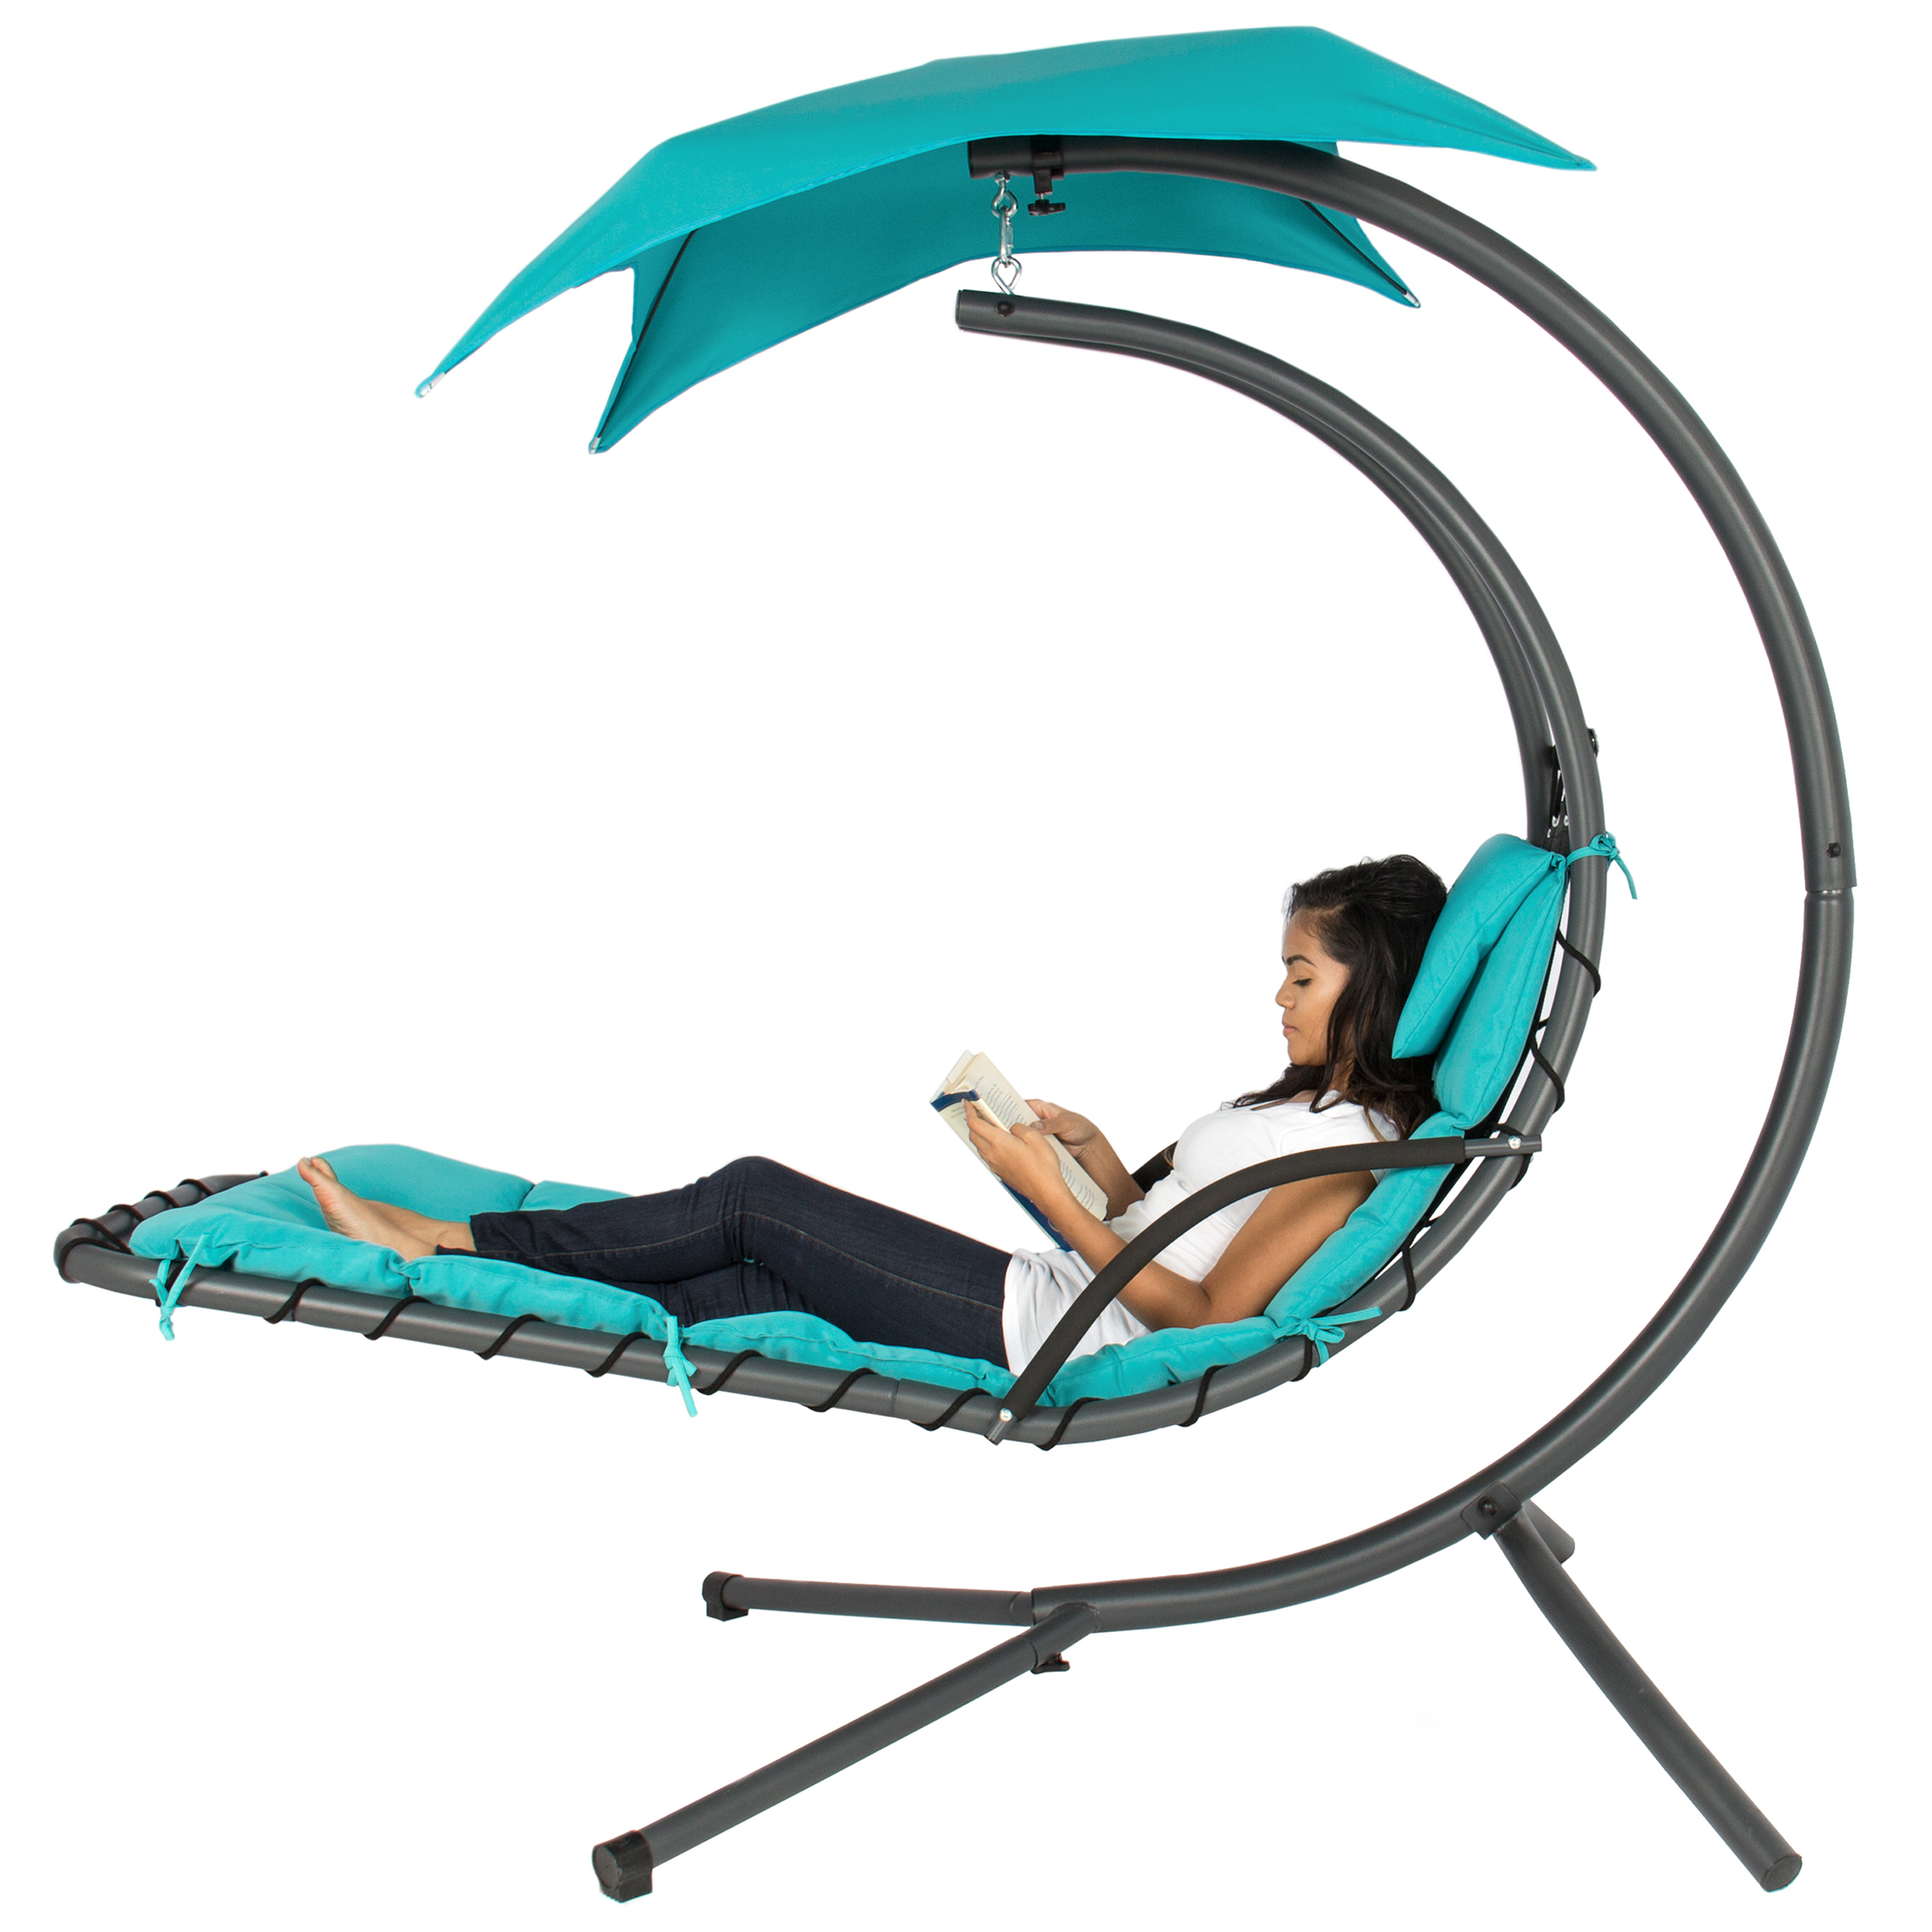 Best Choice Products Outdoor Porch Hanging Curved Chaise Lounge Chair Swing Hammock w/ Pillow, Stand, Canopy